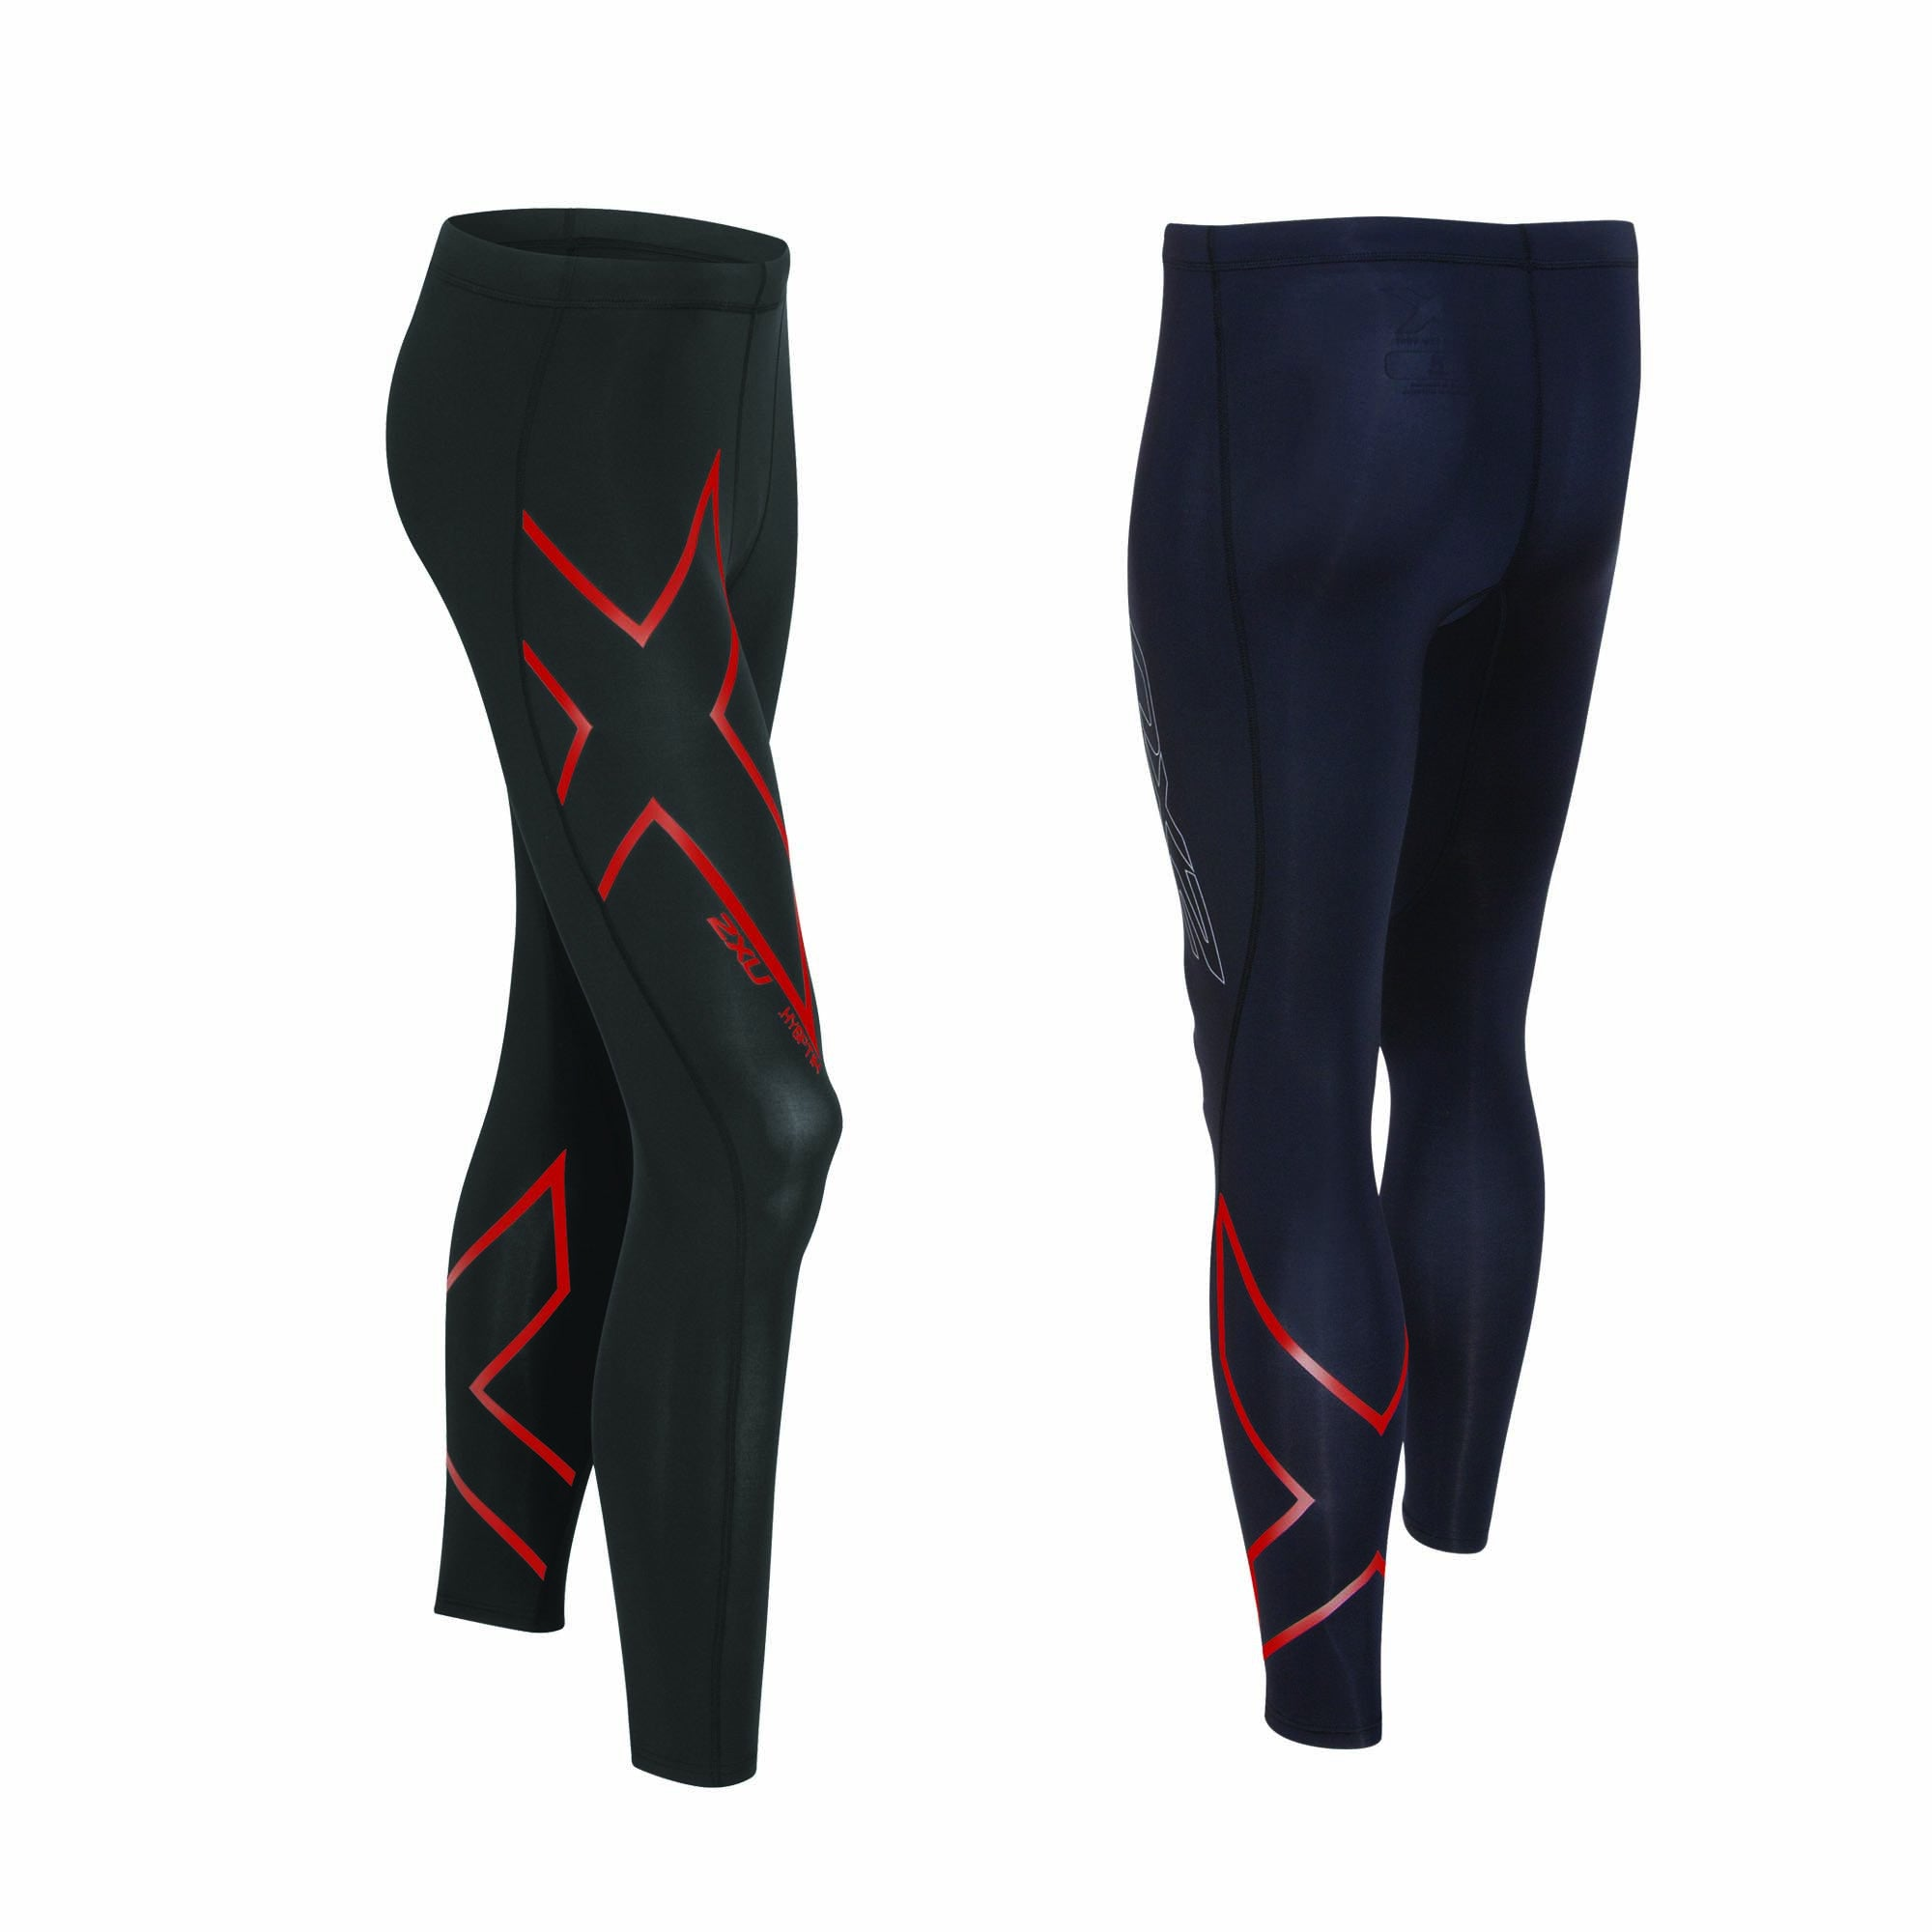 2XU Men's Hyoptik Thermal Compression Tights - Black/RRF